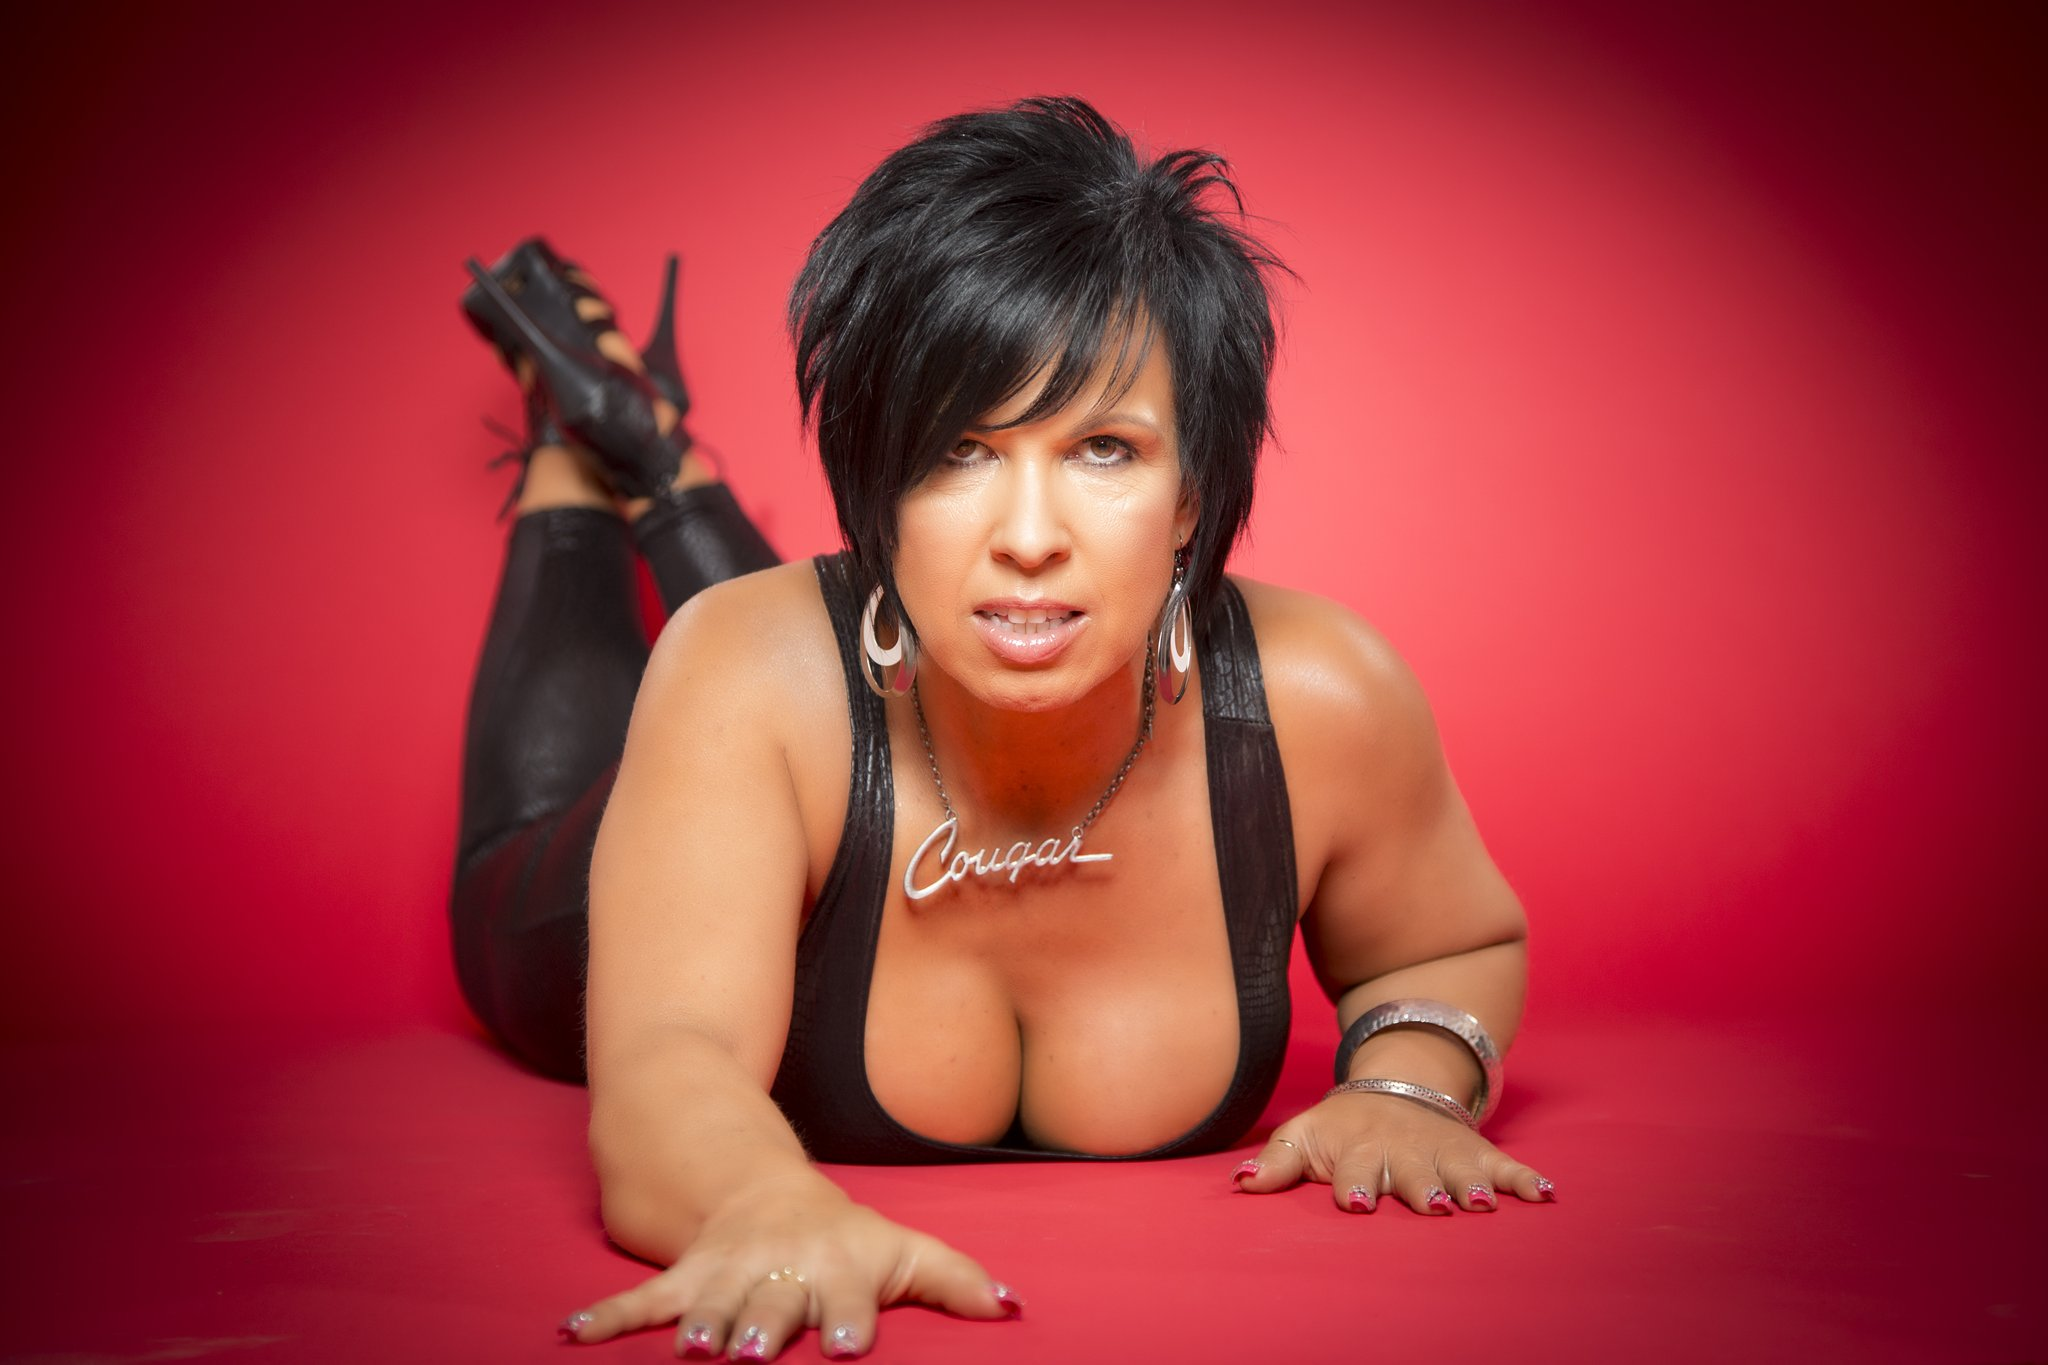 The ass vickie guerrero nude